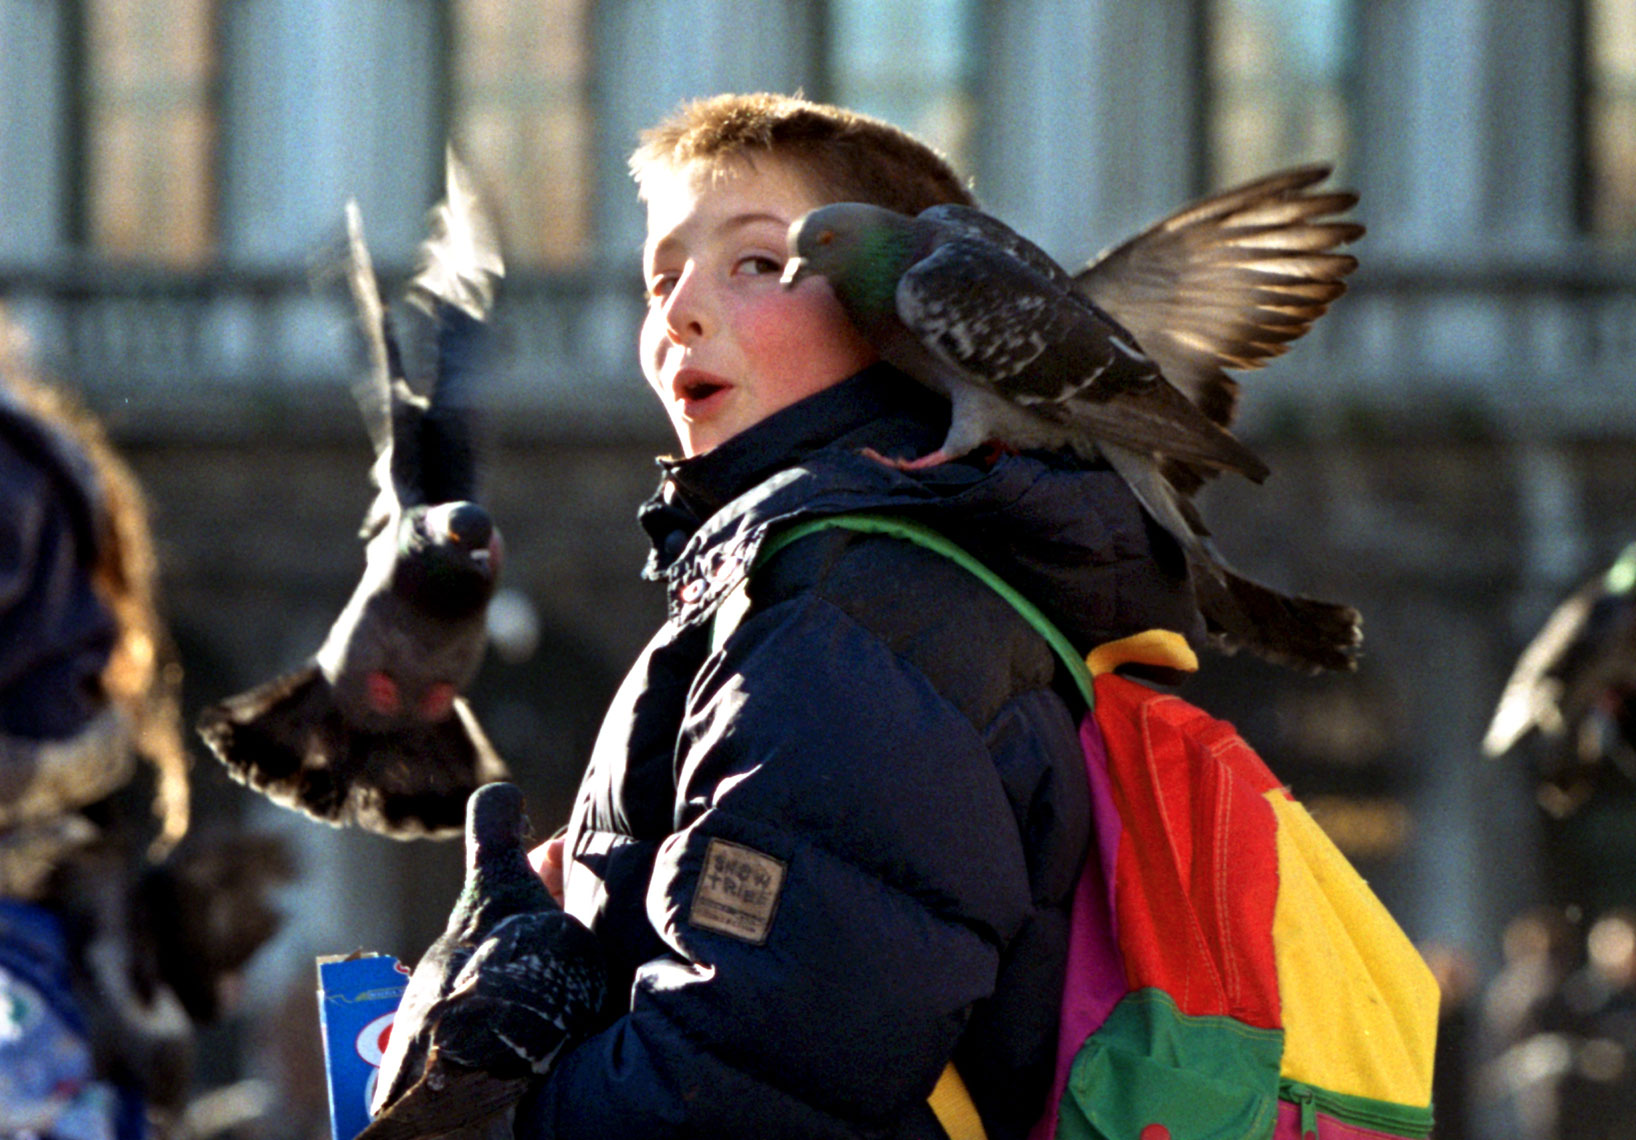 Kid-wPigeon-on-Shoulder